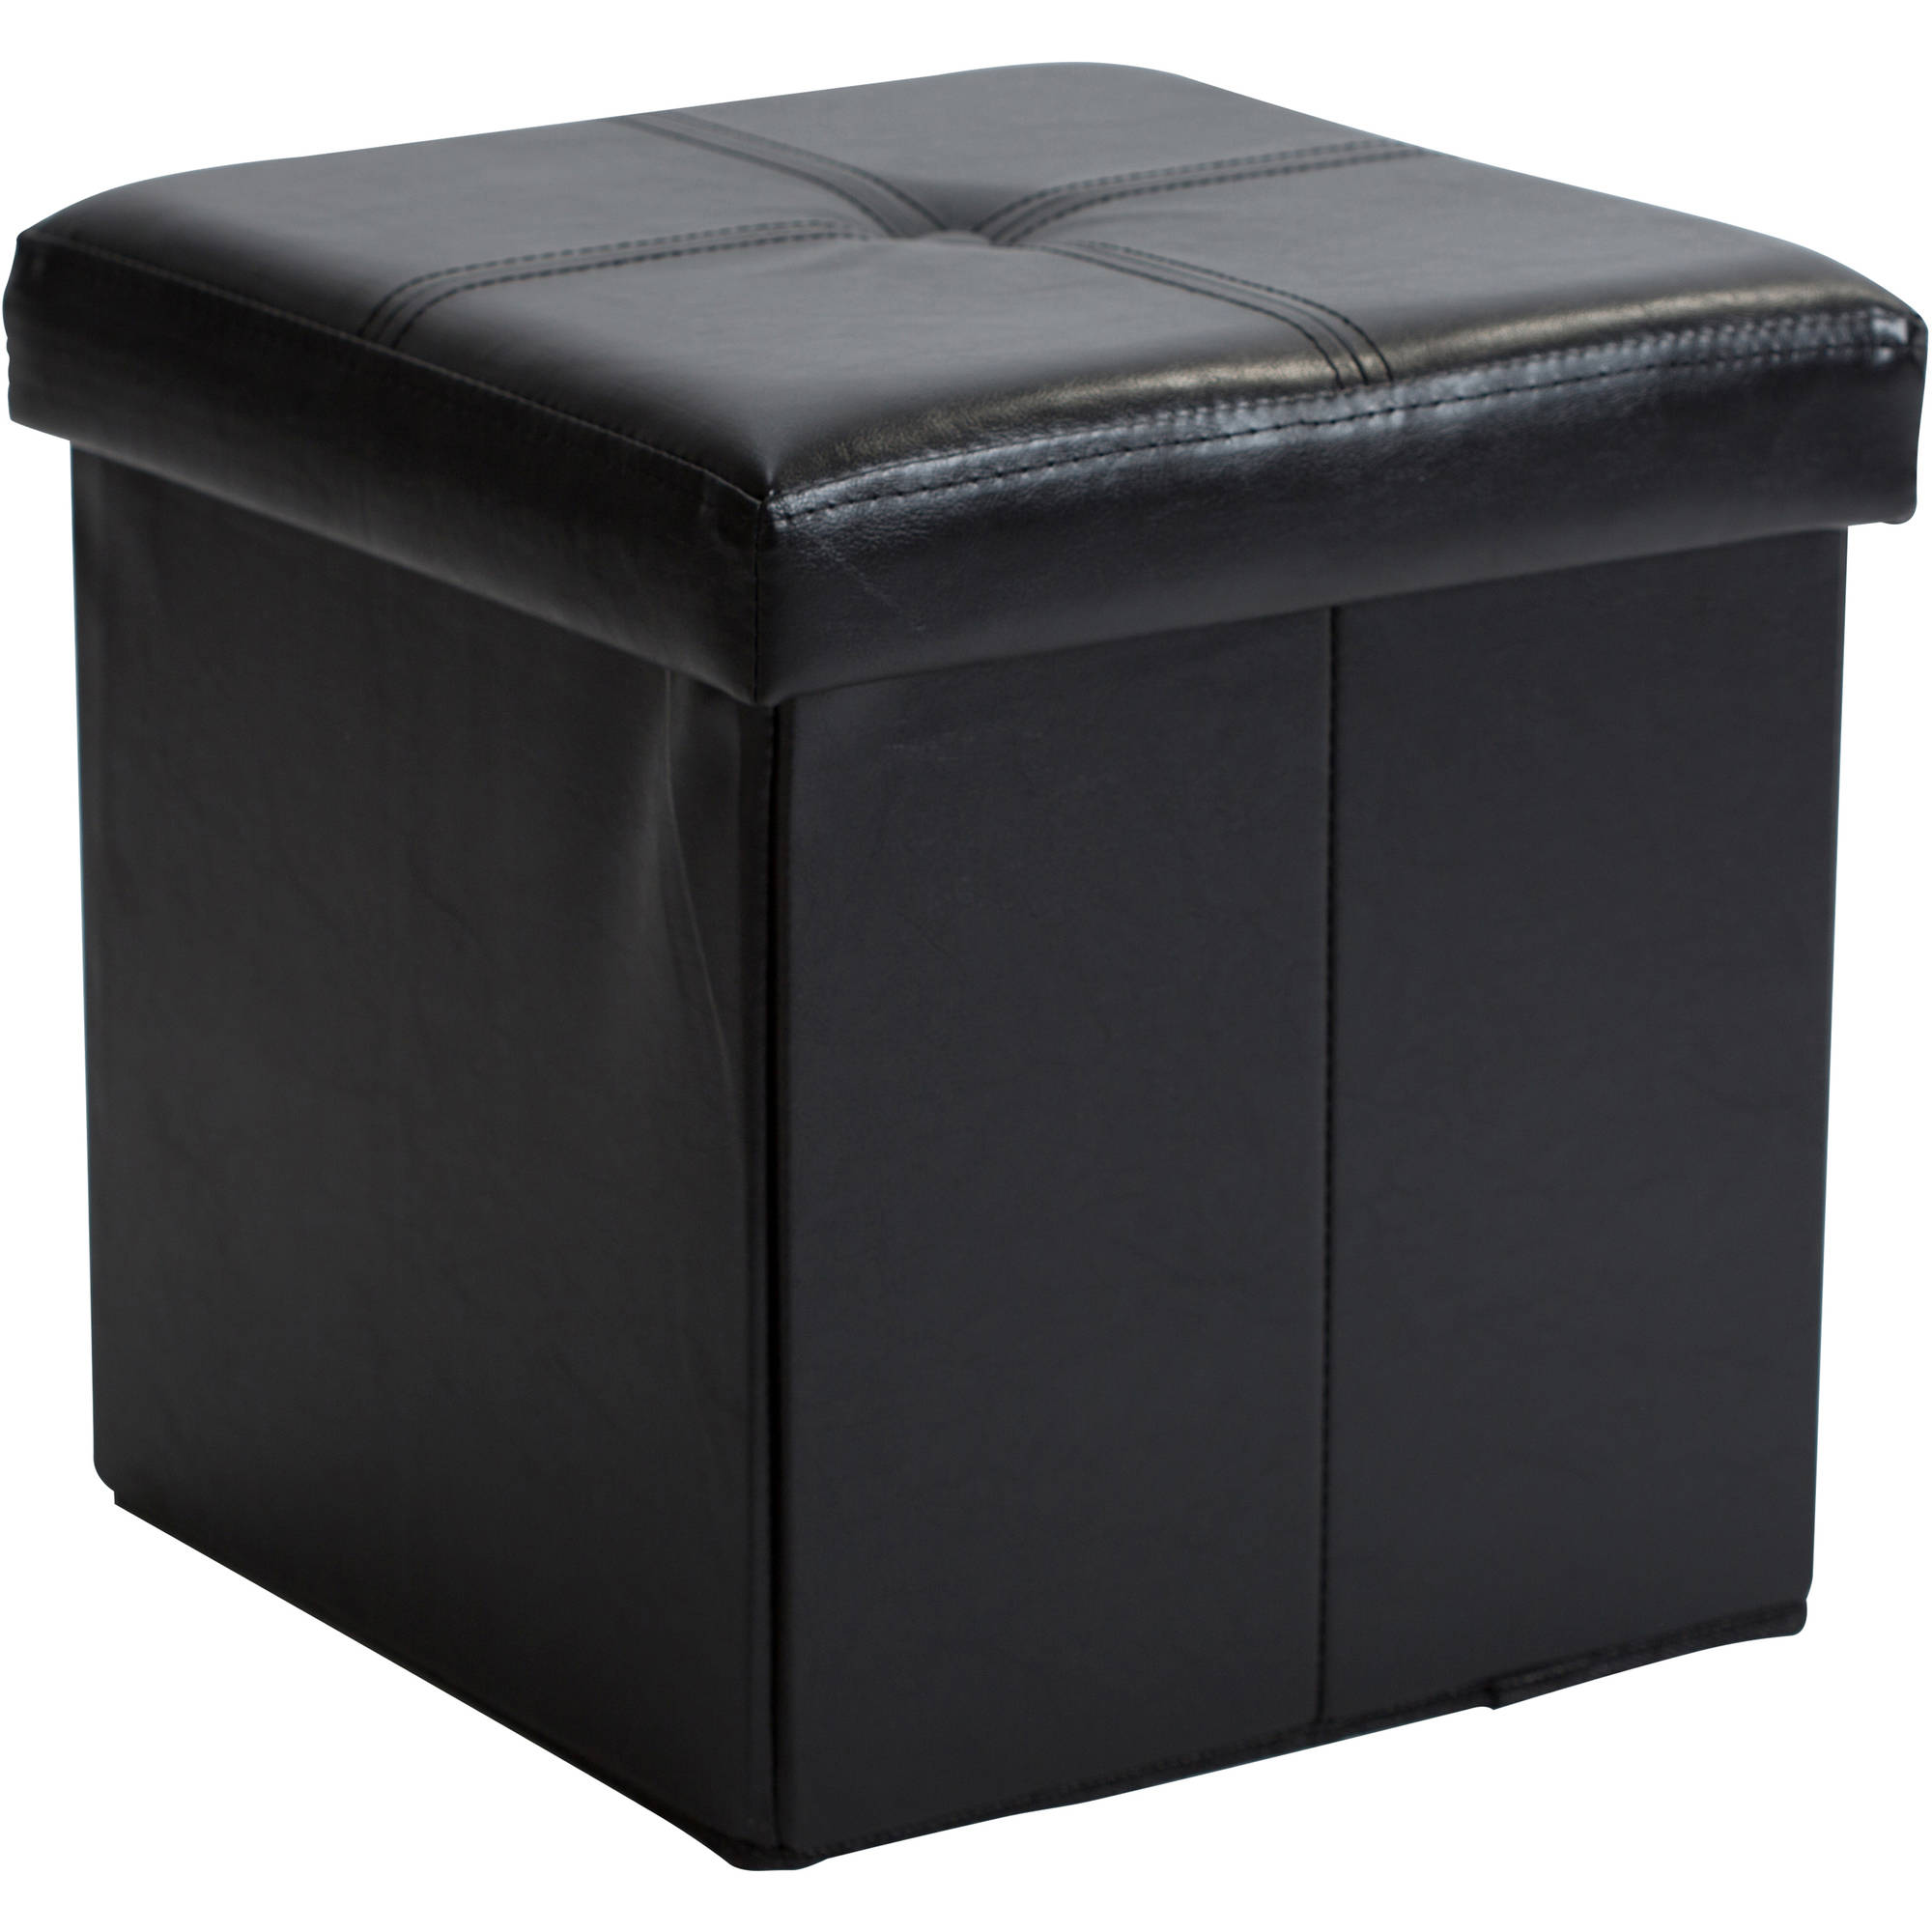 Single Folding Ottoman Black  sc 1 st  Walmart : storage ottoman white  - Aquiesqueretaro.Com